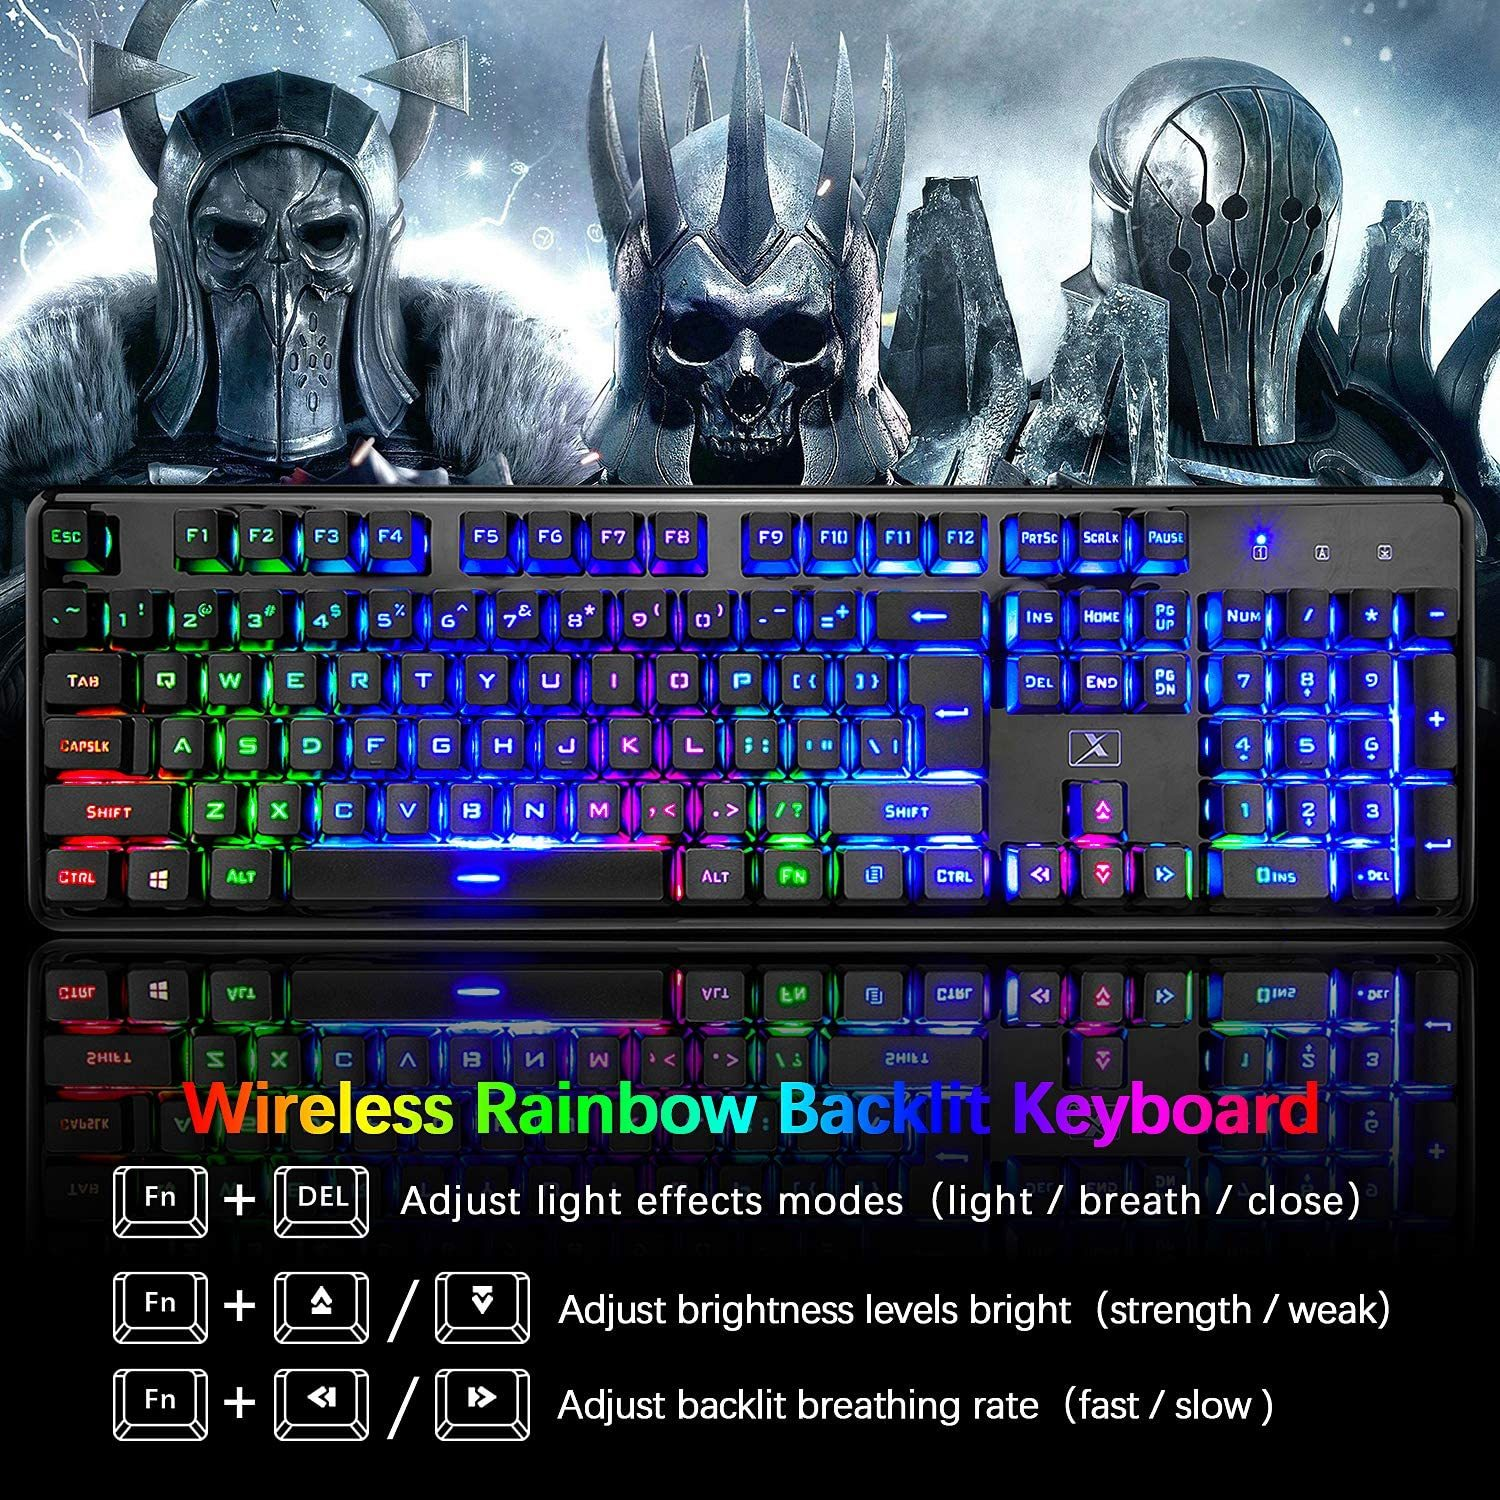 Keyboard and Mouse,Suspended Keycap Mechanical Feel Backlit Gaming Keyboard Mice Combo,Wireless 2.4G Drive Free,Adjustable Breathing Lamp,Anti-ghosting,4800 mAh Battery for Laptop Pc Mac